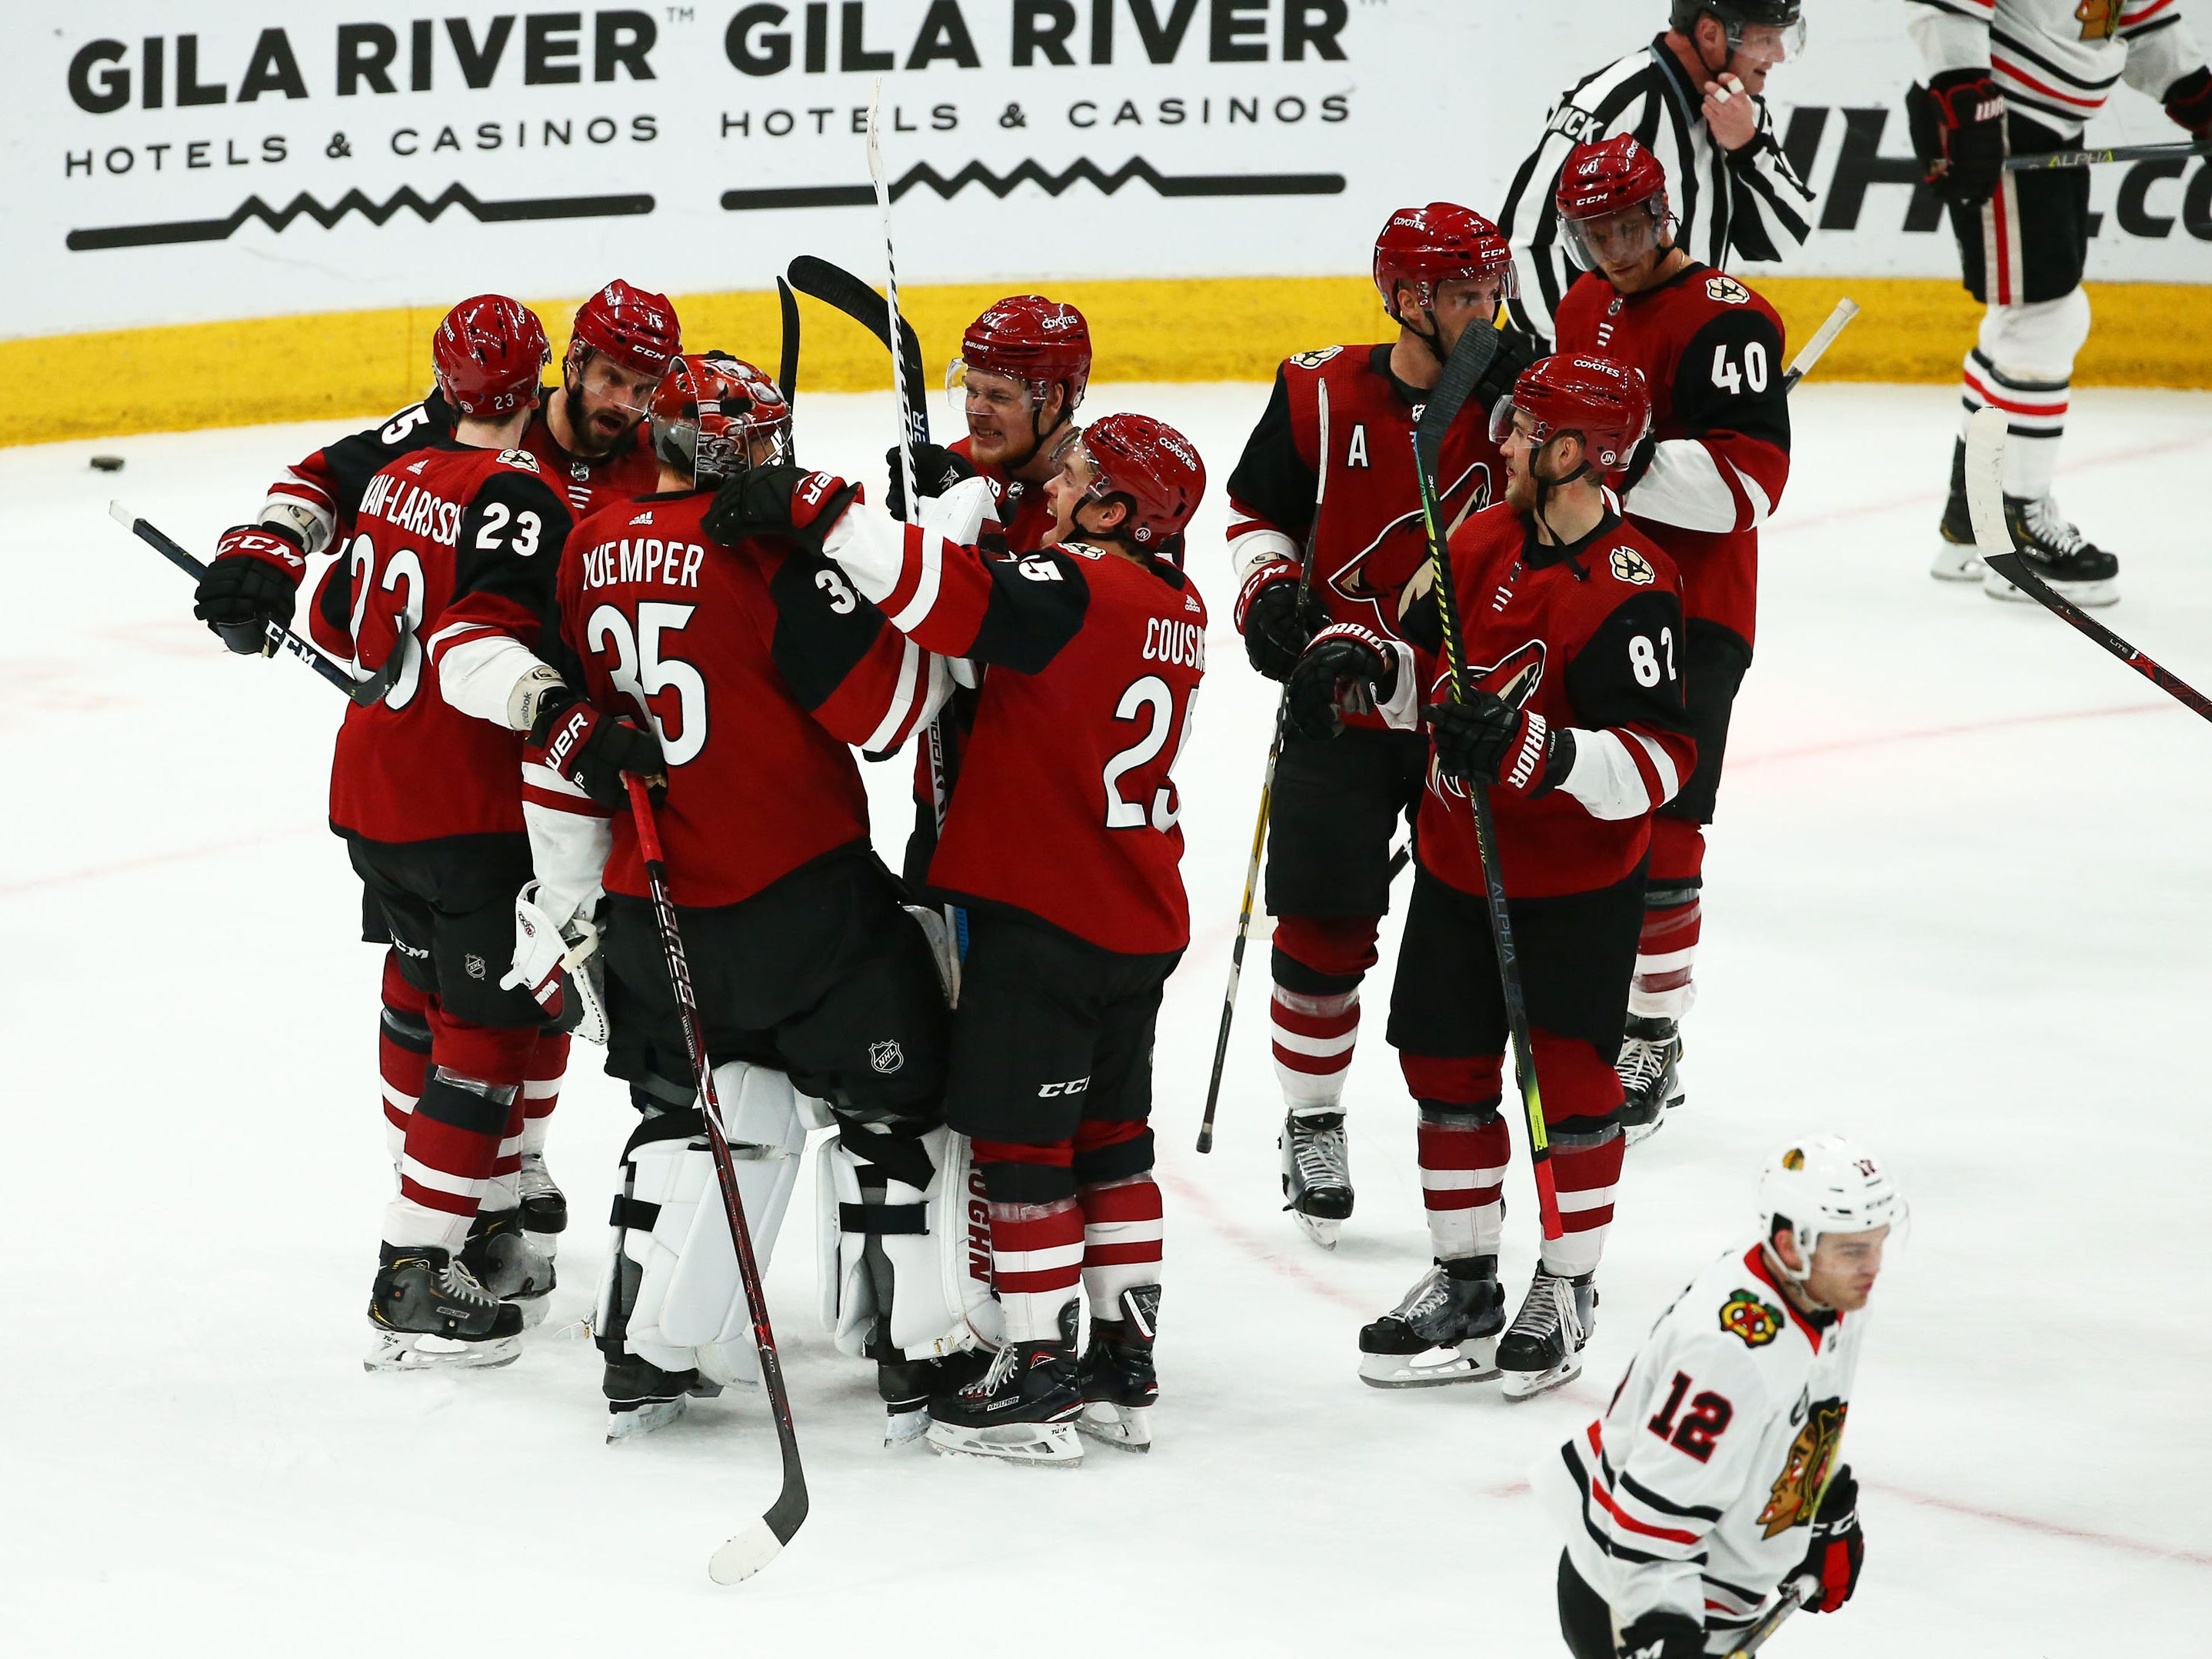 Arizona Coyotes celebrate their 1-0 win over the Chicago Blackhawks on Mar. 26, 2019, at Gila River Arena in Glendale, Ariz.